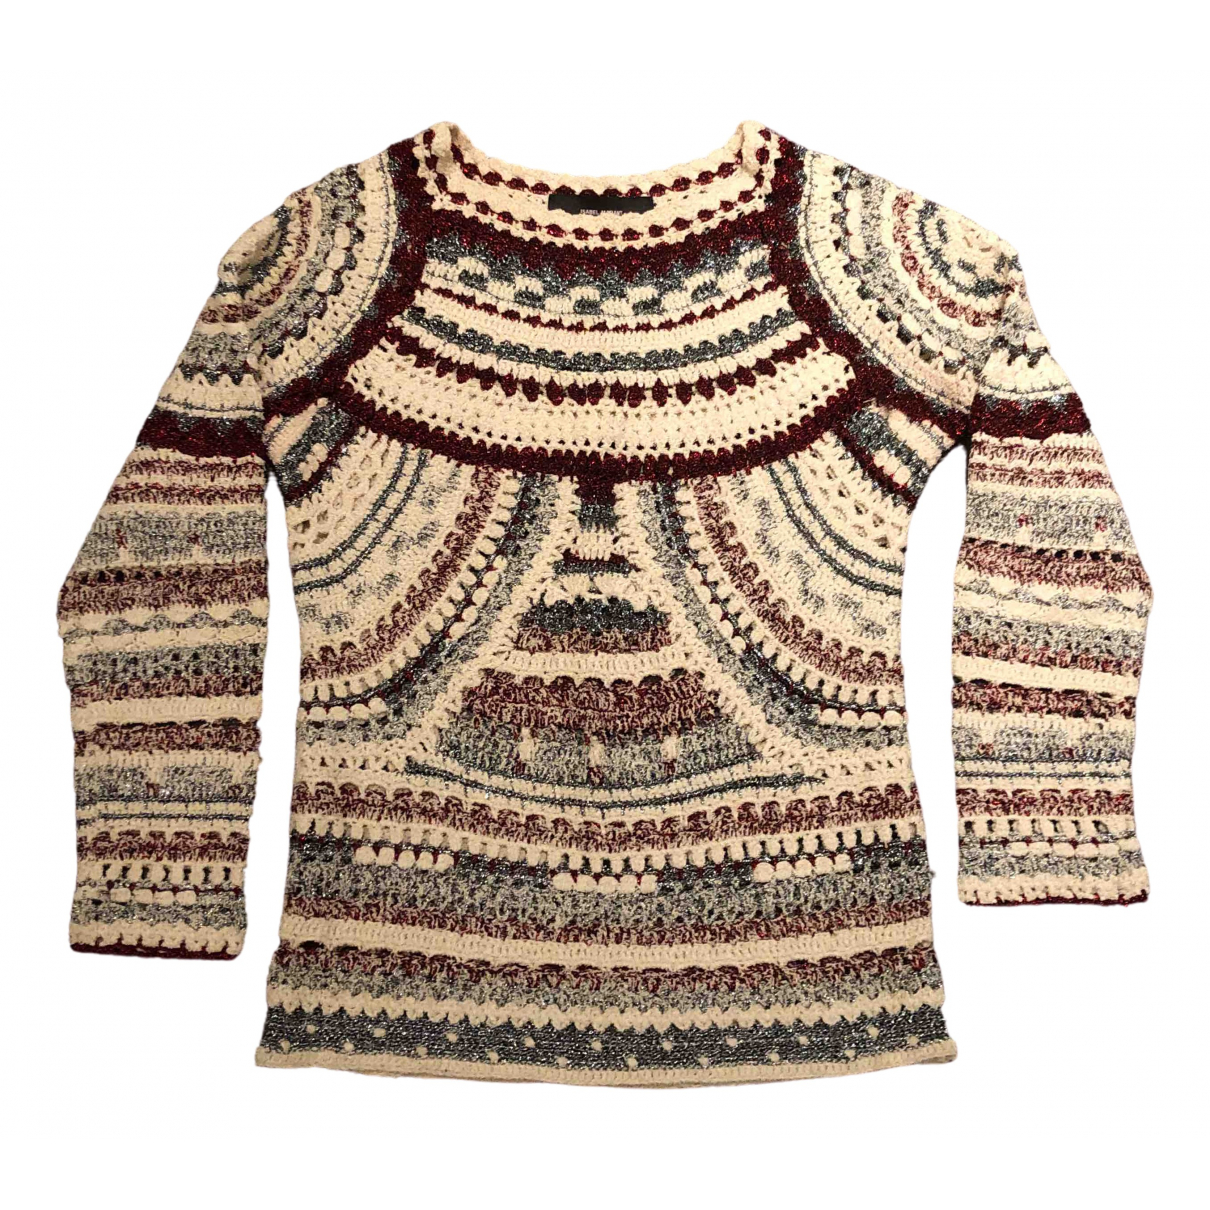 Isabel Marant N Multicolour Knitwear for Women 36 FR